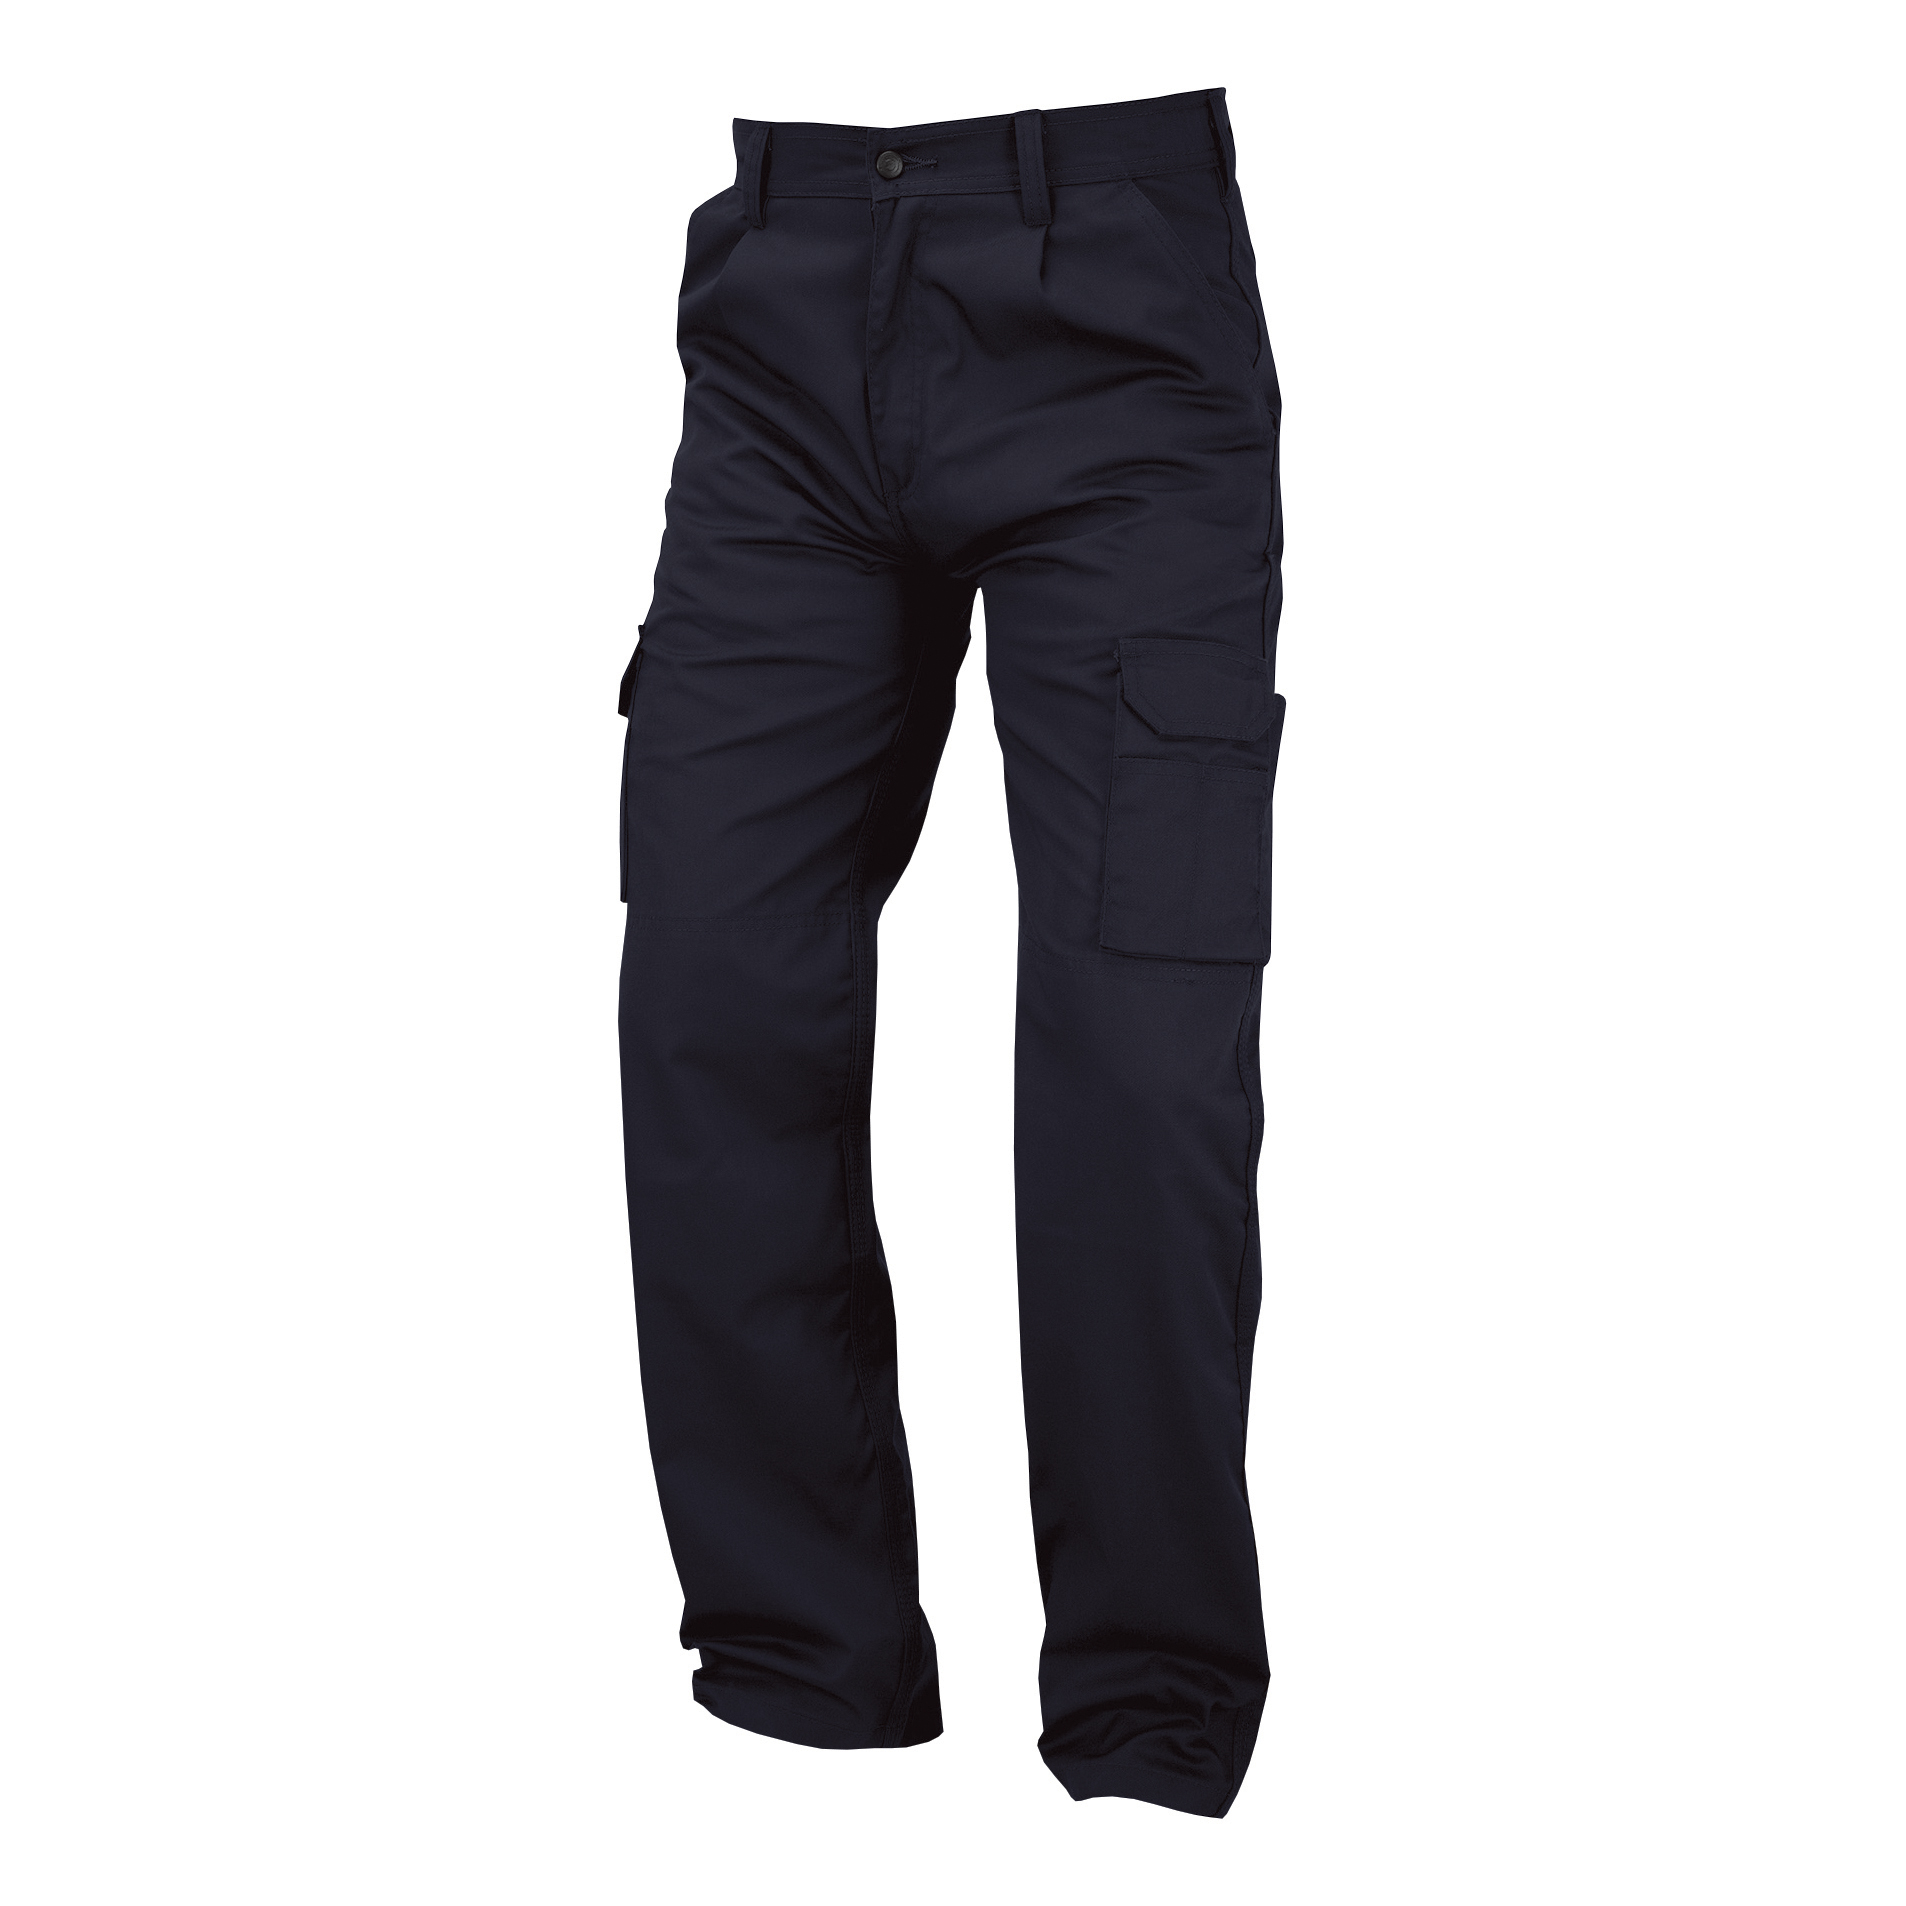 Combat Trousers Multifunctional 50in Long Navy Blue Ref PCTHWN50T *Approx 3 Day Leadtime*